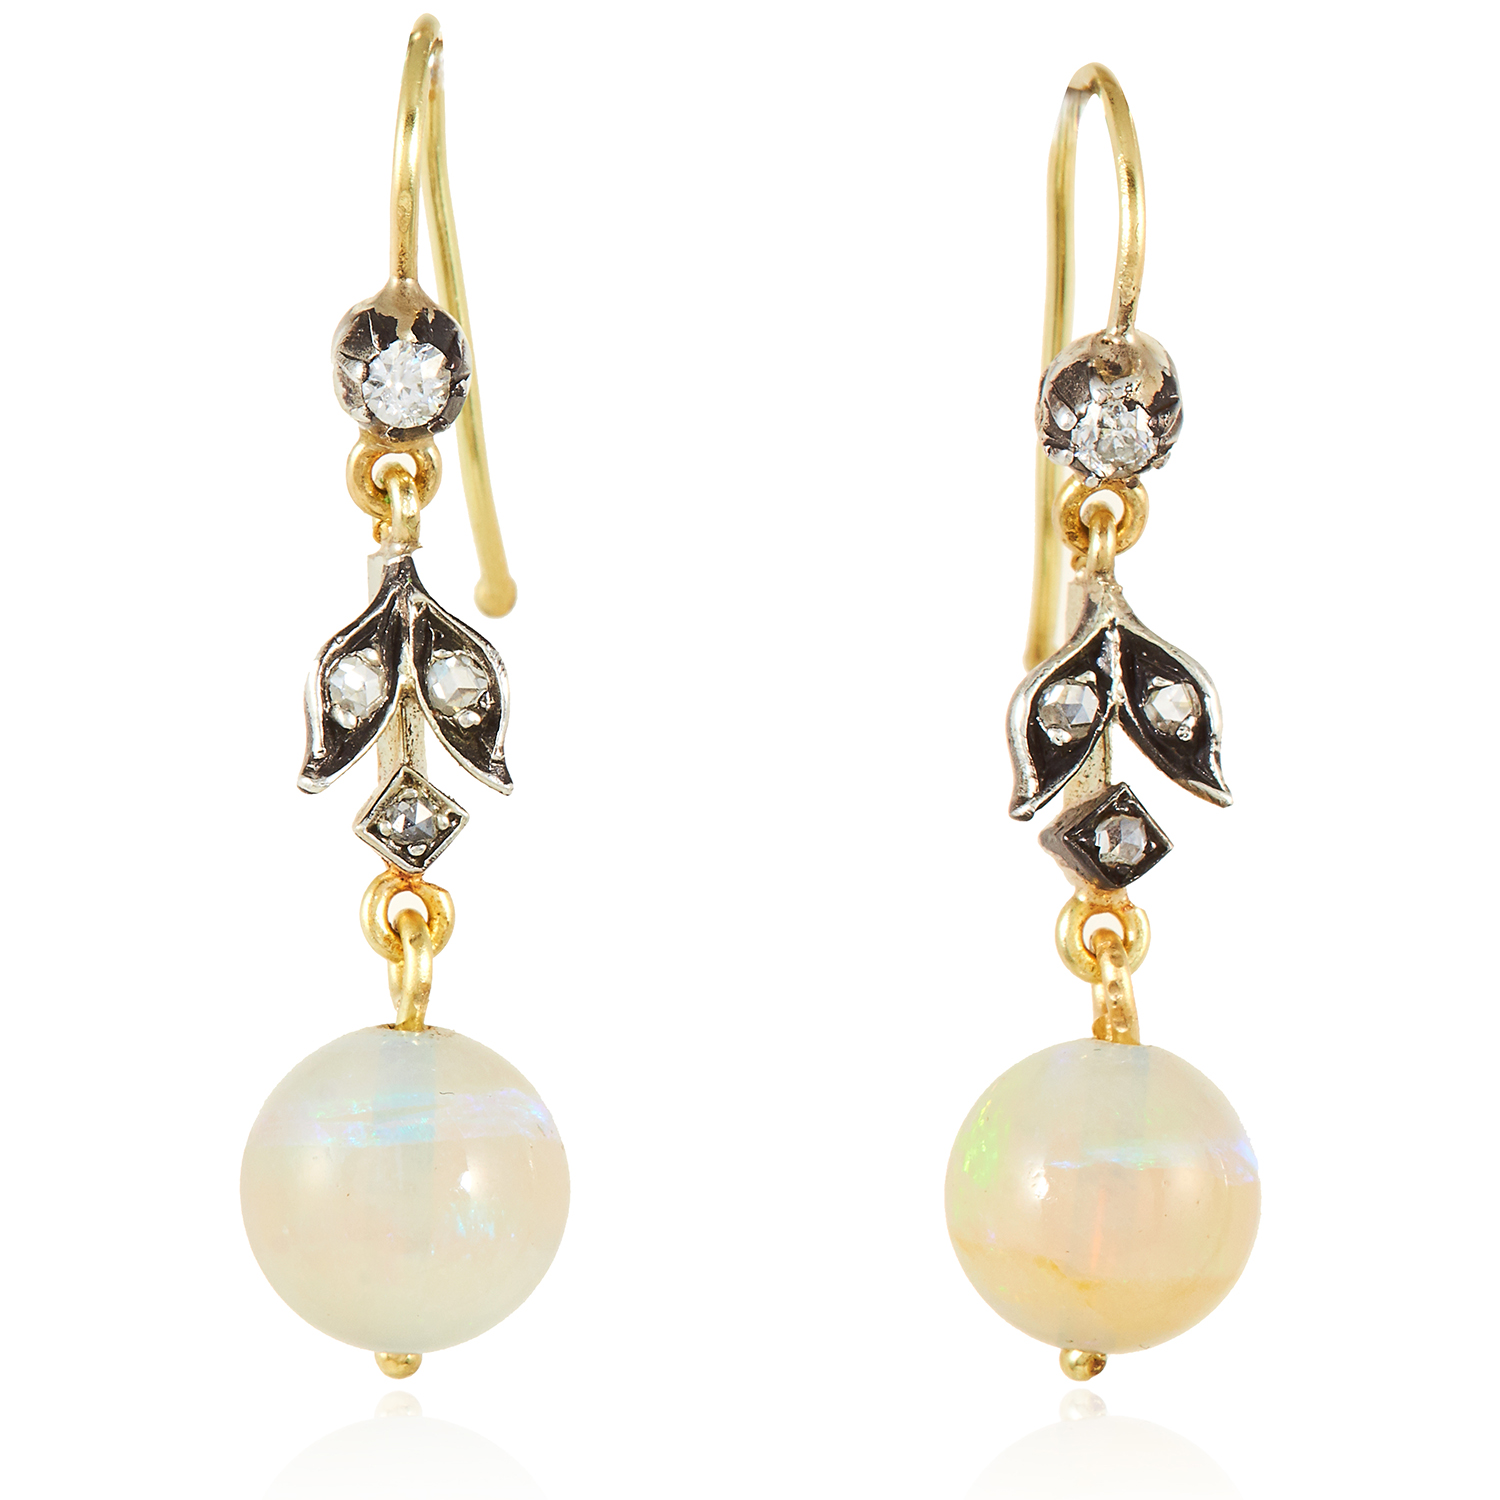 Los 23 - A PAIR OF ANTIQUE OPAL AND DIAMOND EARRINGS in yellow gold and silver, each set with a polished opal